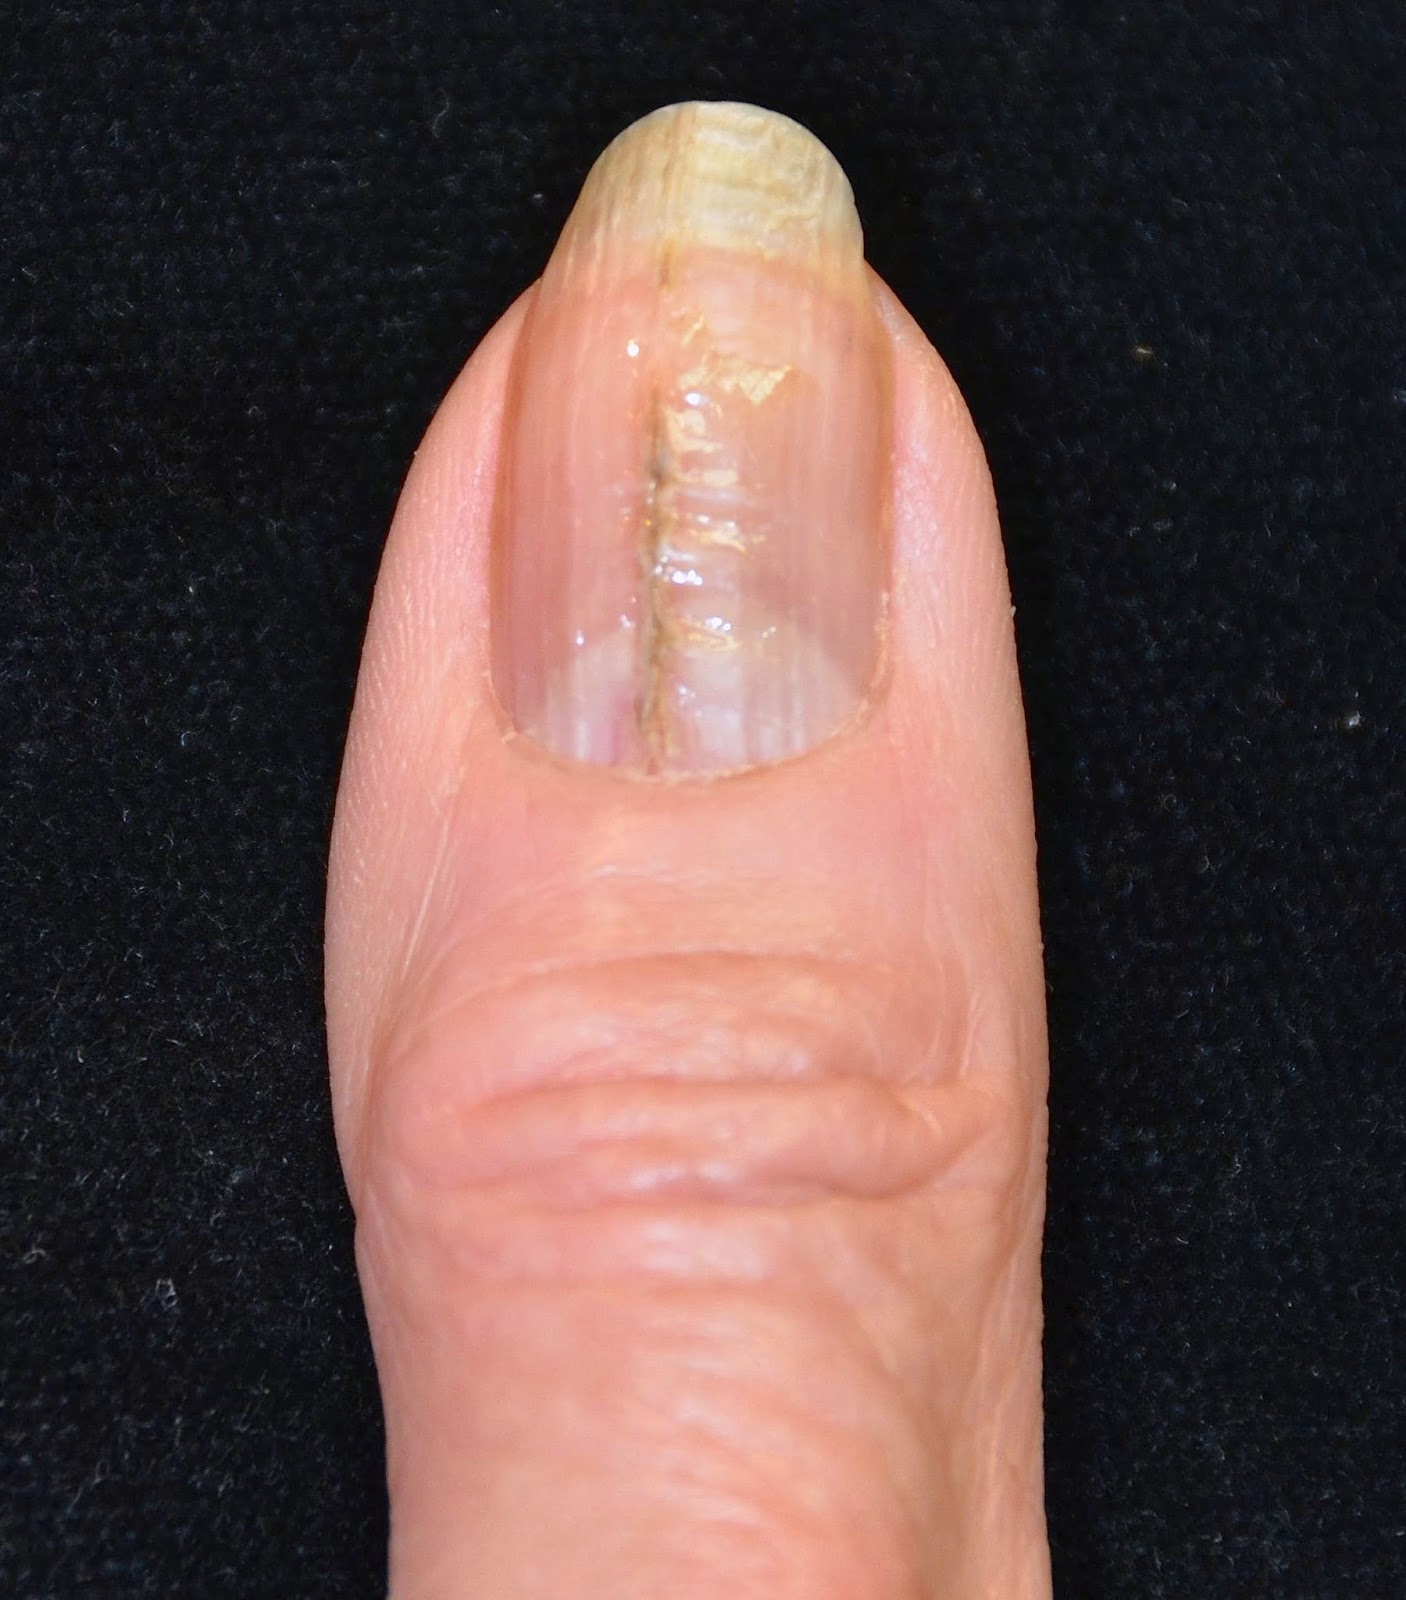 VIRTUAL GRAND ROUNDS IN DERMATOLOGY 2.0: Median Nail Dystrophy